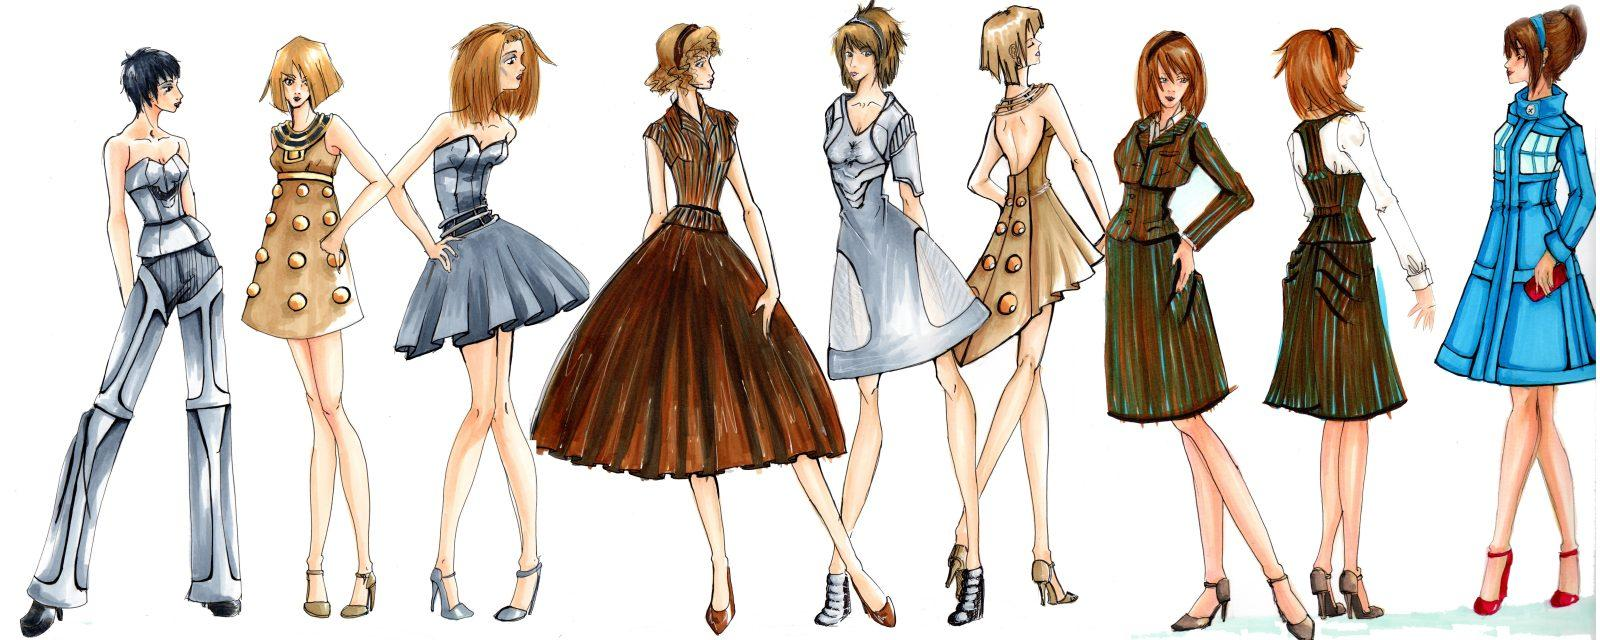 Why does fashion change - Essay Example